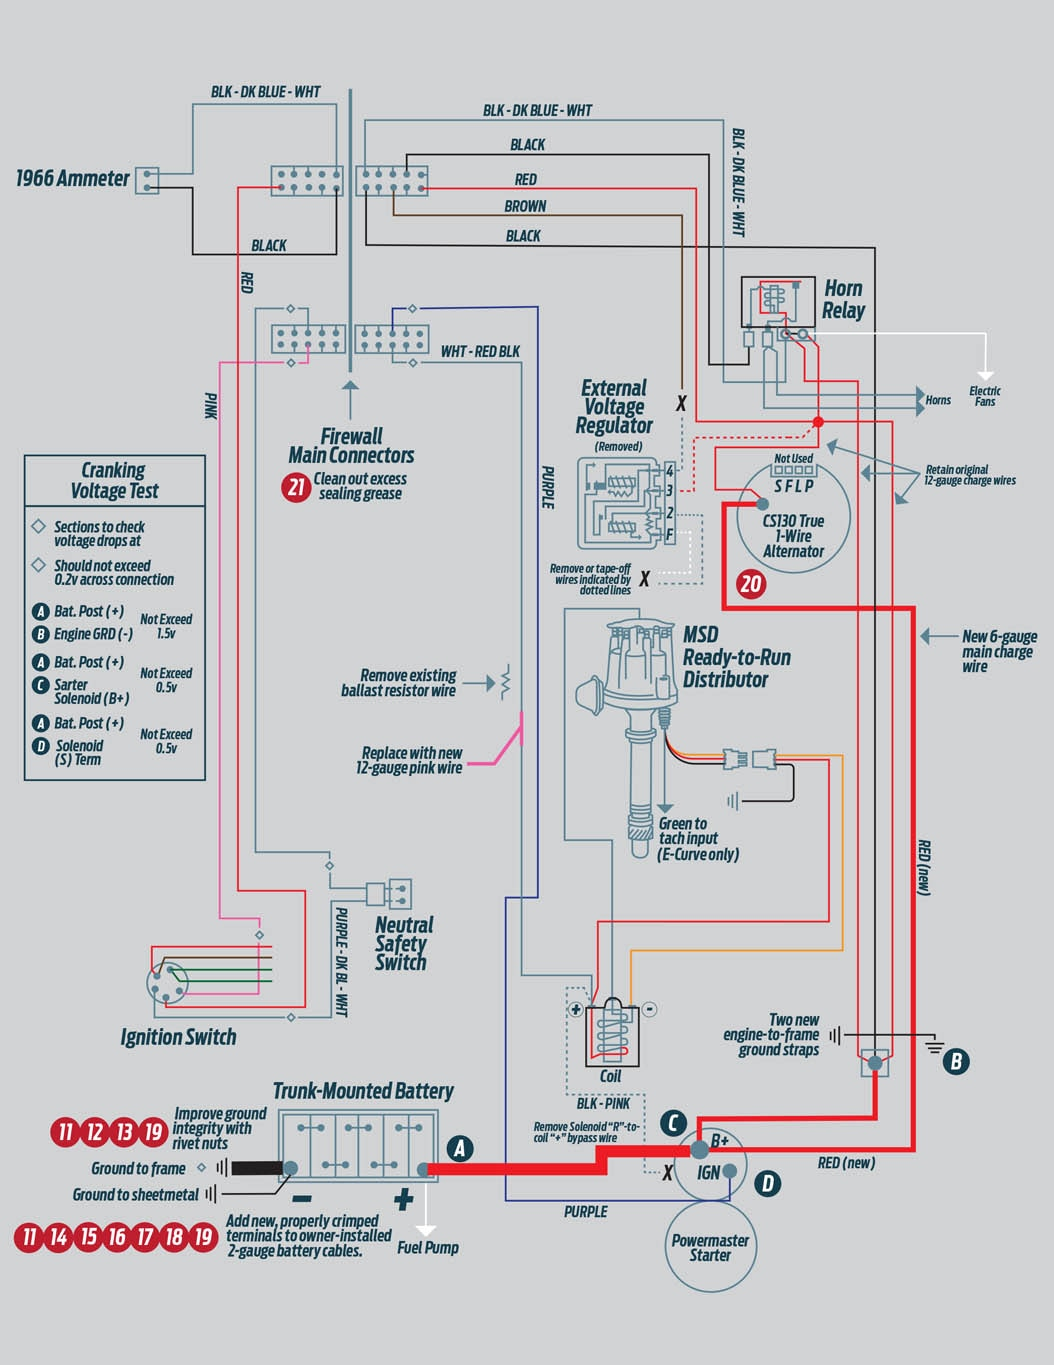 hight resolution of 10 the chevelle had severe voltage drops and inadequate wiring this diagram calls out necessary upgrades